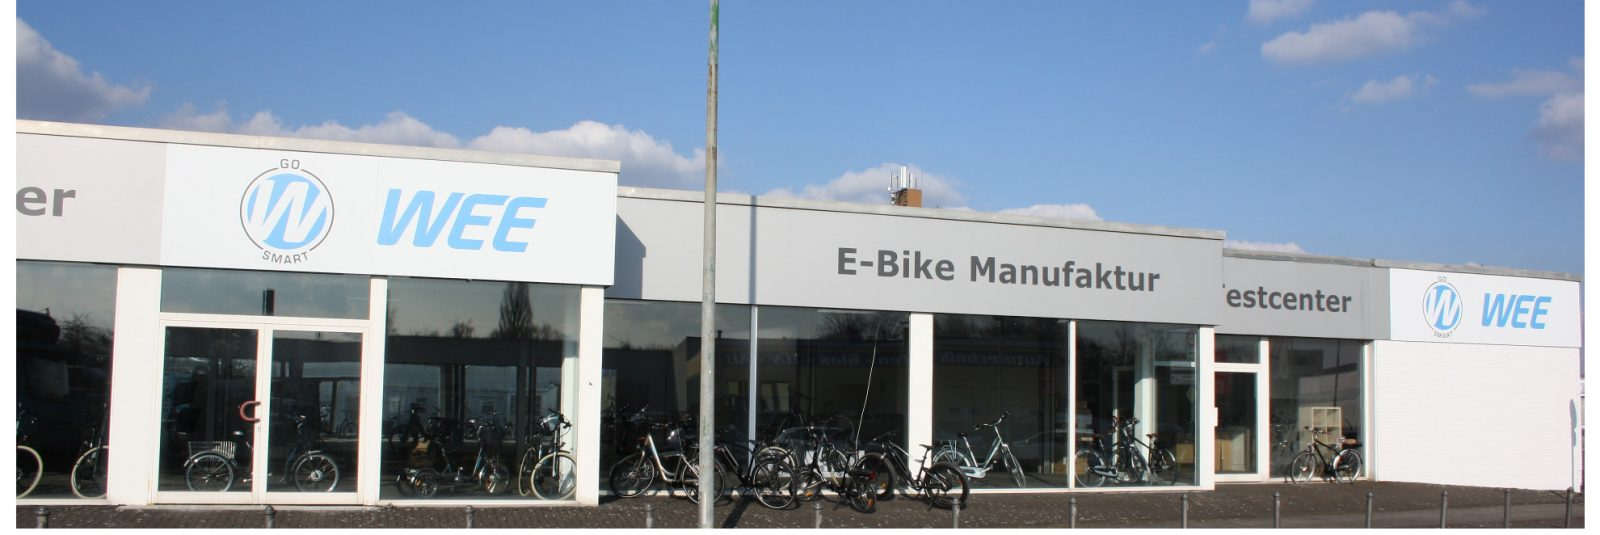 WEE E-Bike Manufaktur Neuss